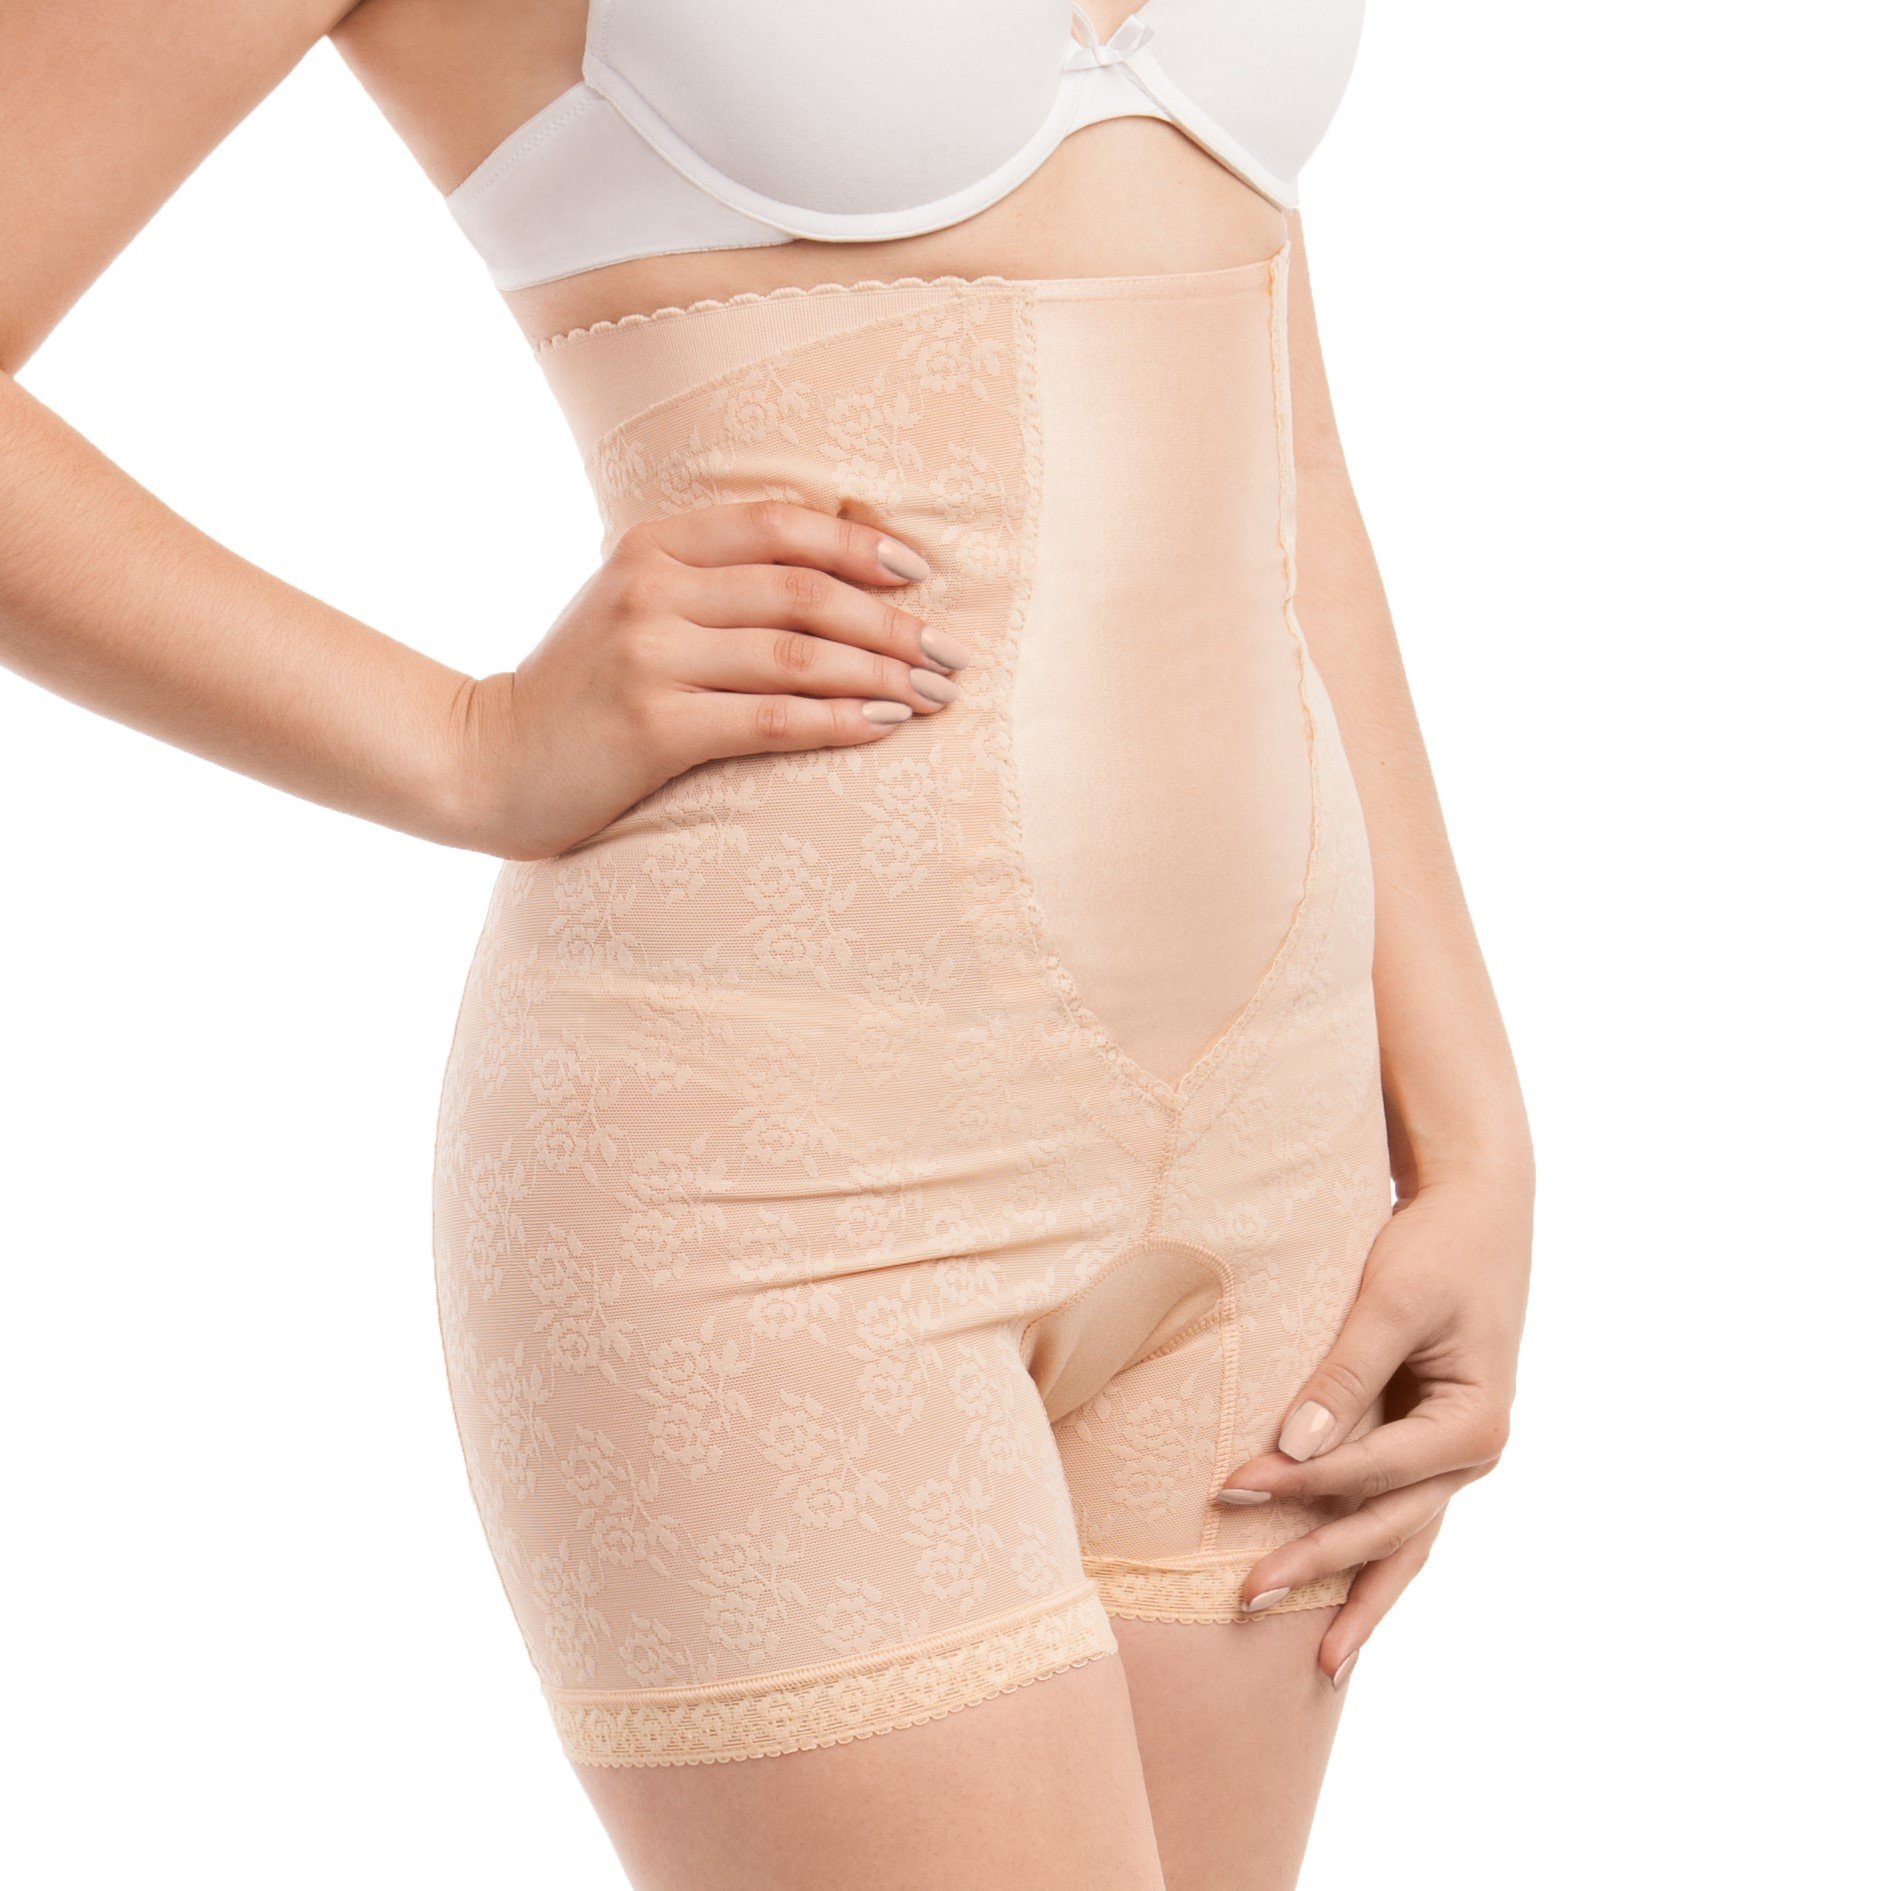 Gabrialla Abdominal Body Shaping, Back Support and Slimming Girdle (Reduces up to two sizes) 4XL